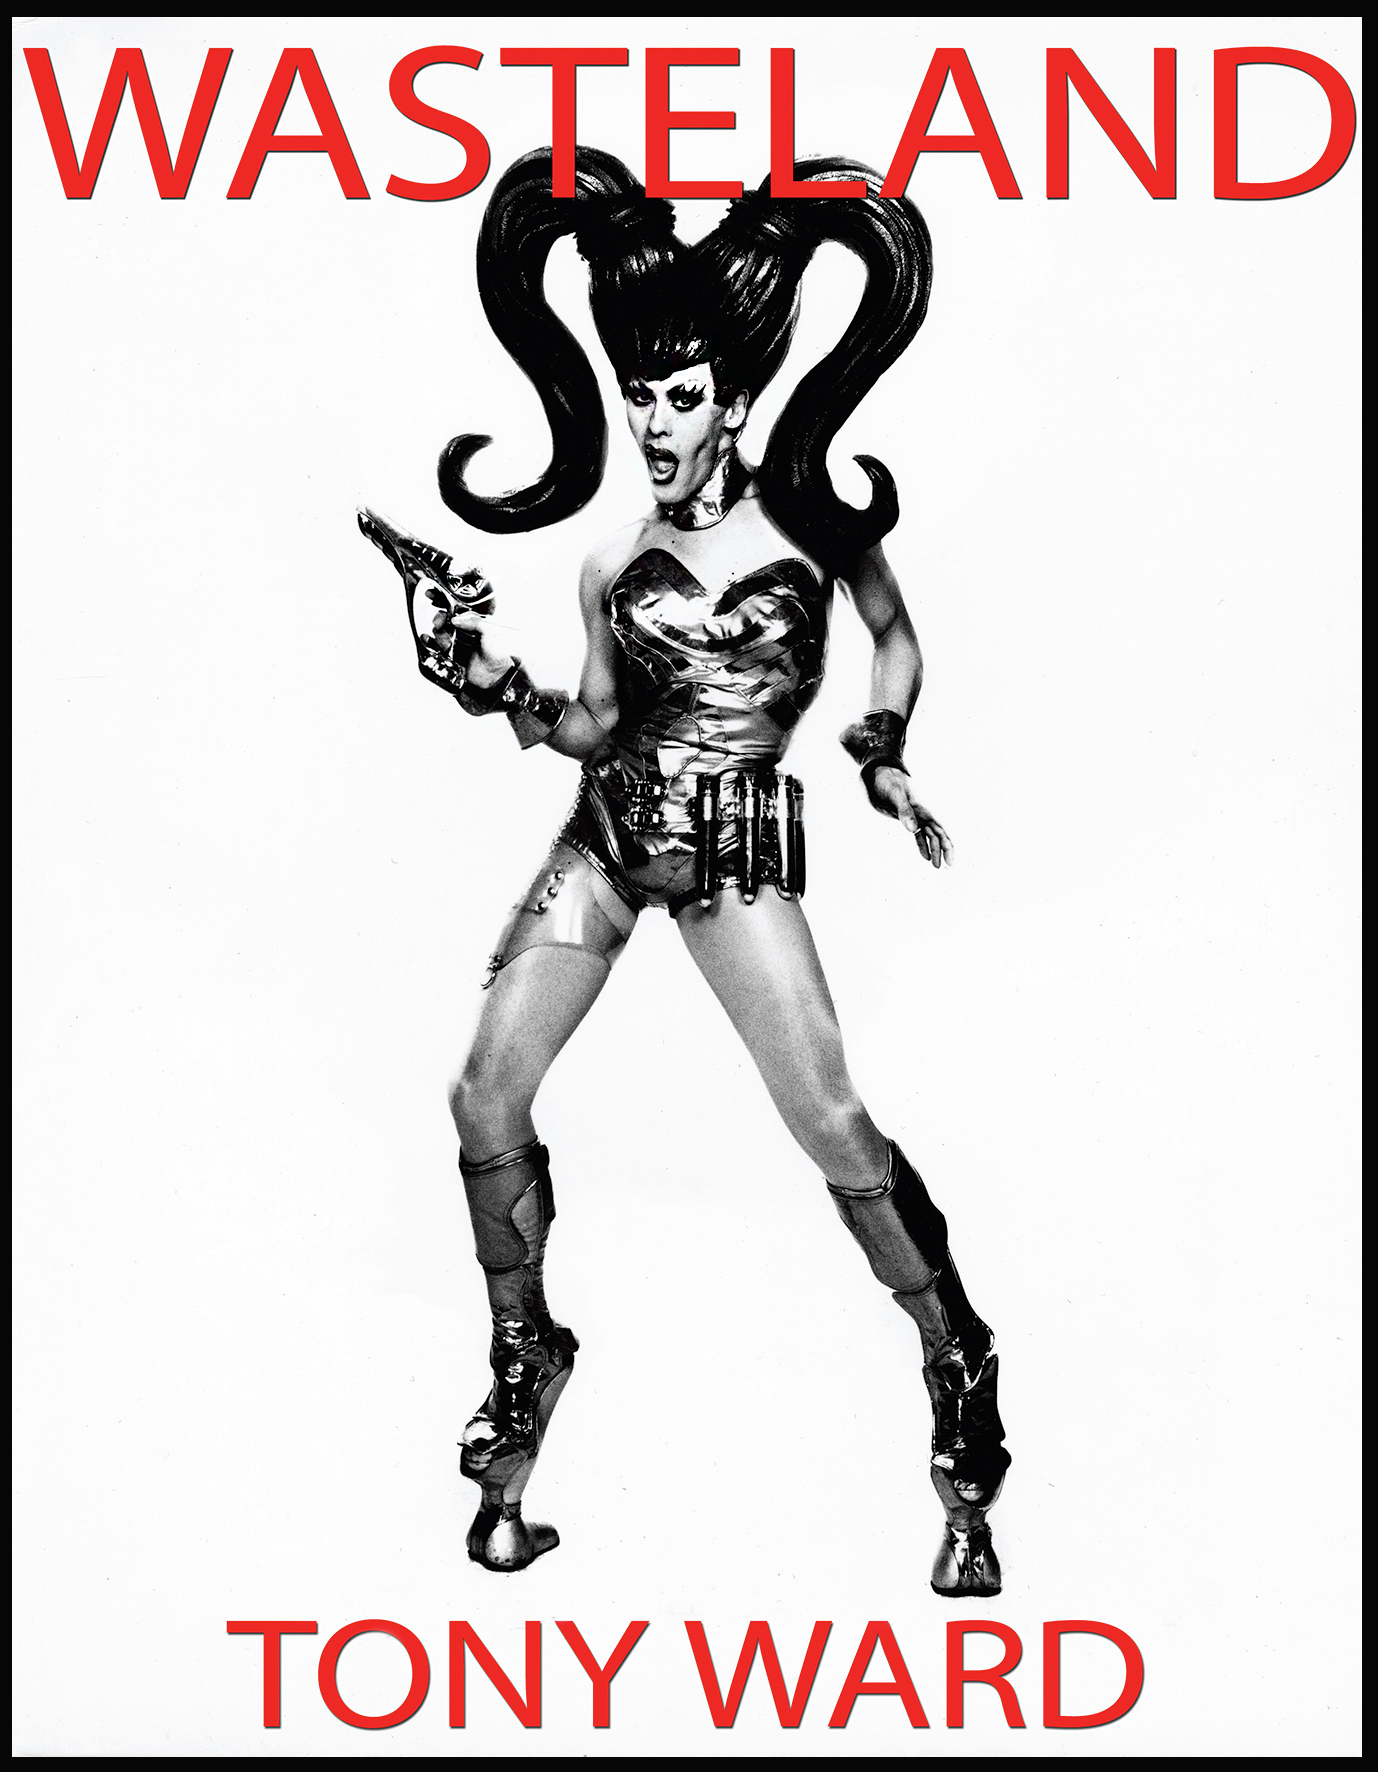 Tony_Ward_photography_wasteland_book_cover_fetish_party_documentary_Amsterdam_netherlands